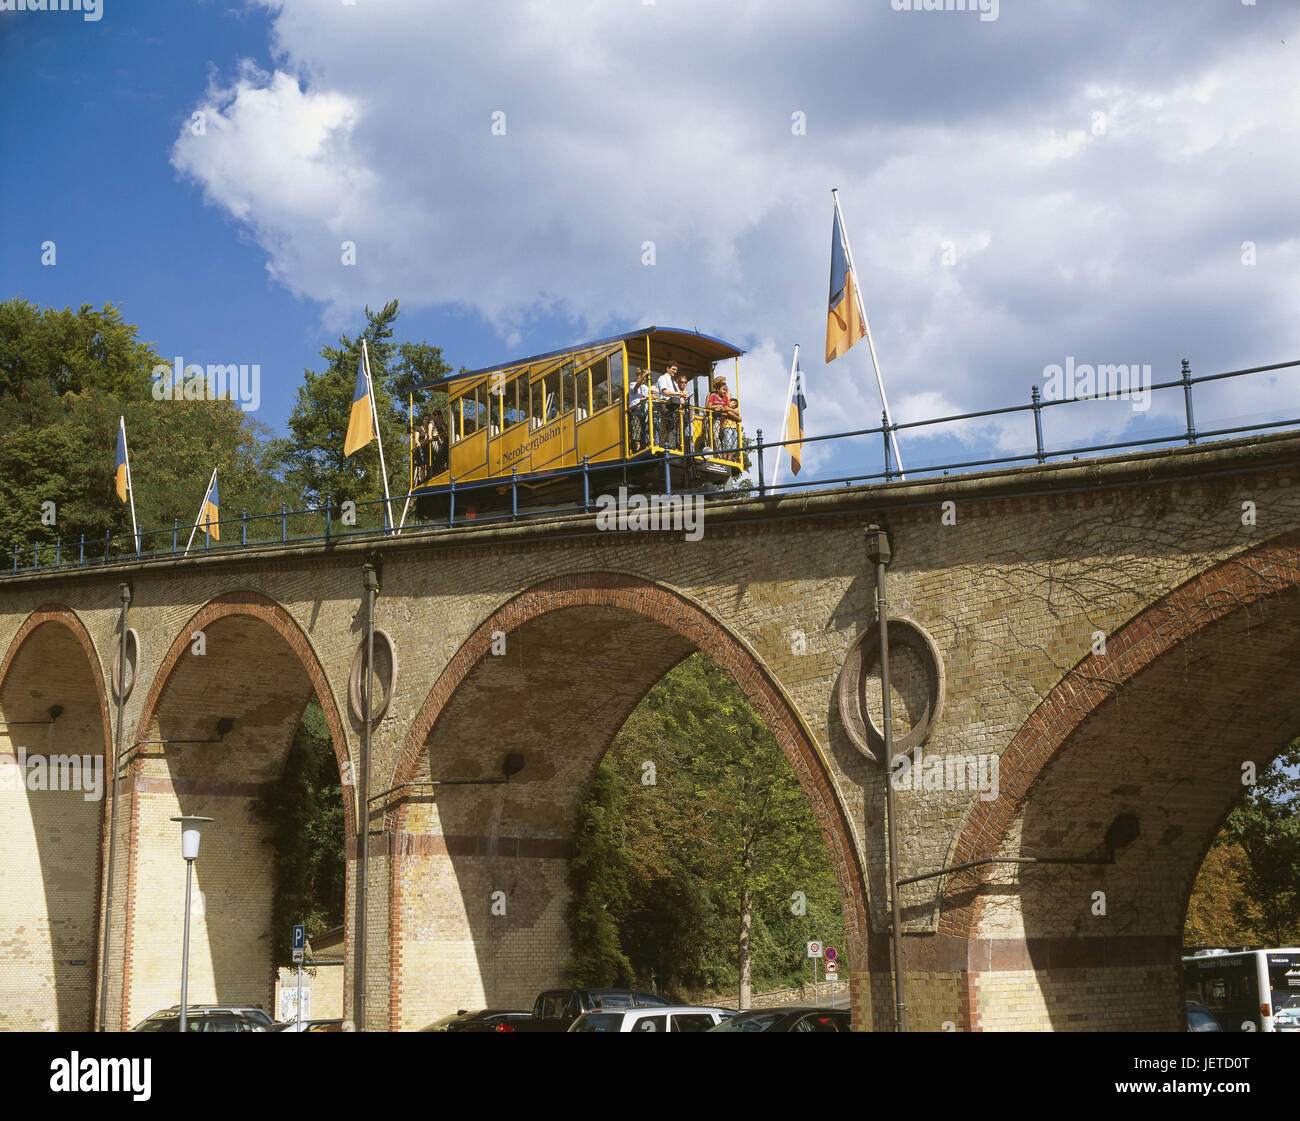 Germany, Hessen, Wiesbaden, Nerotal, mountain, viaduct, Nerobergbahn, passengers, driving downhill, summer, means - Stock Image